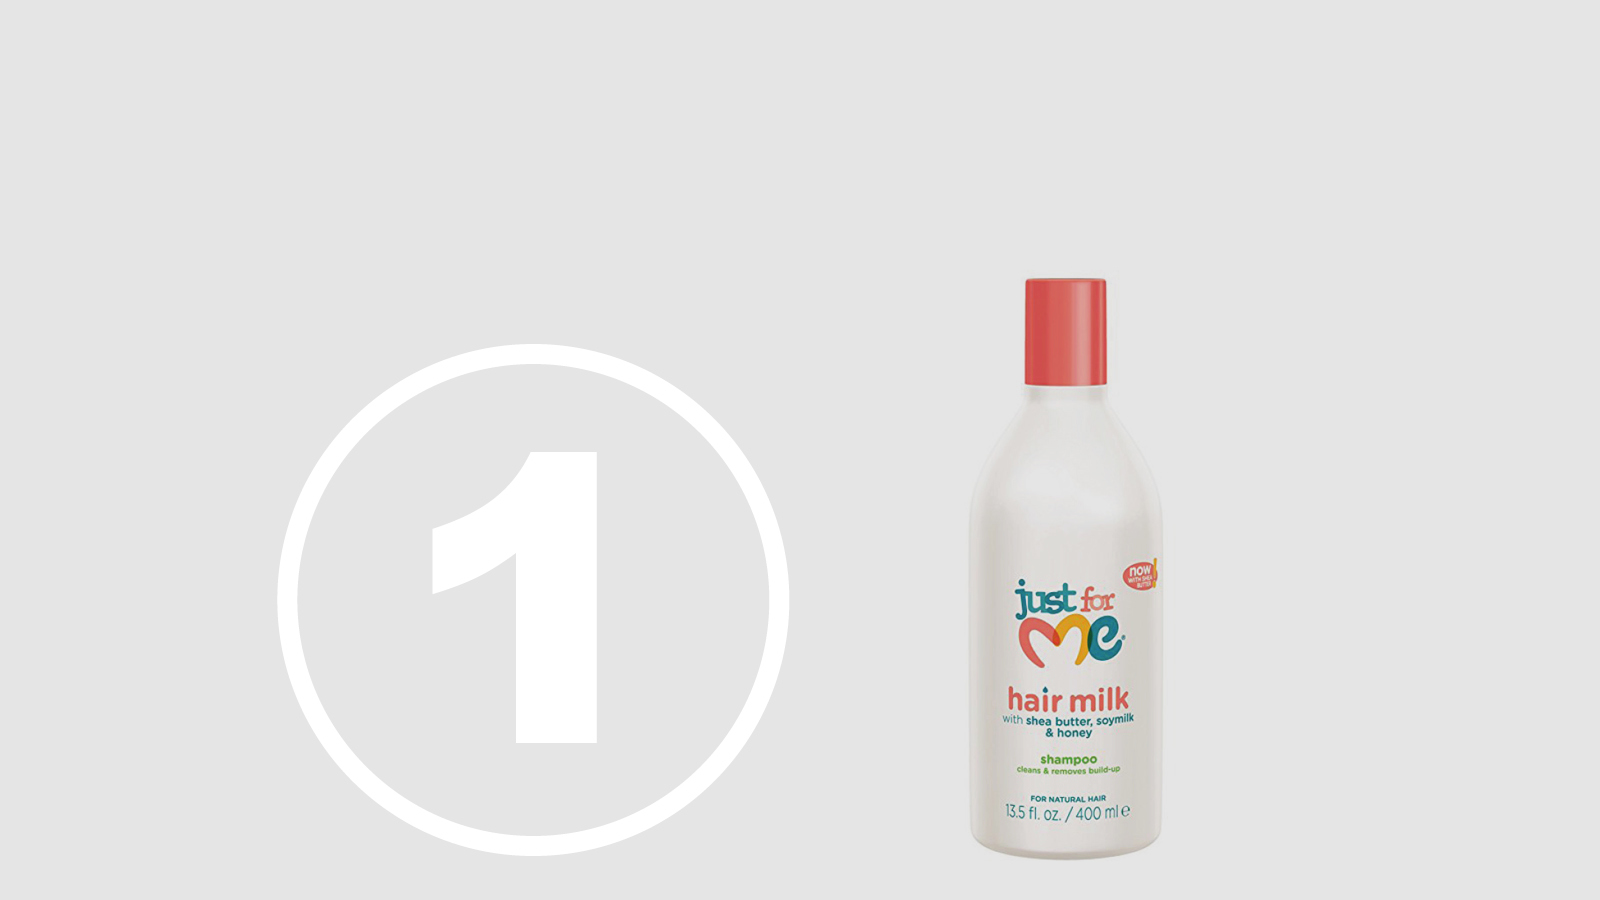 """<h5>Top Ten Most Hazardous Products</h5><h4>Just for Me Shampoo</h4><p>A children's shampoo, from a hair-relaxing kit marketed to kids of color by Strength of Nature.<br />We found <span style=""""font-size:115%; background-color:rgba(0,0,0,0.7); font-wieght:bold;"""">24 chemicals</span> chemicals linked to chronic health effects with <span style=""""font-size:115%; background-color:rgba(0,0,0,0.7); font-wieght:bold;"""">70.8% hidden in """"fragrance.""""</span></p>"""